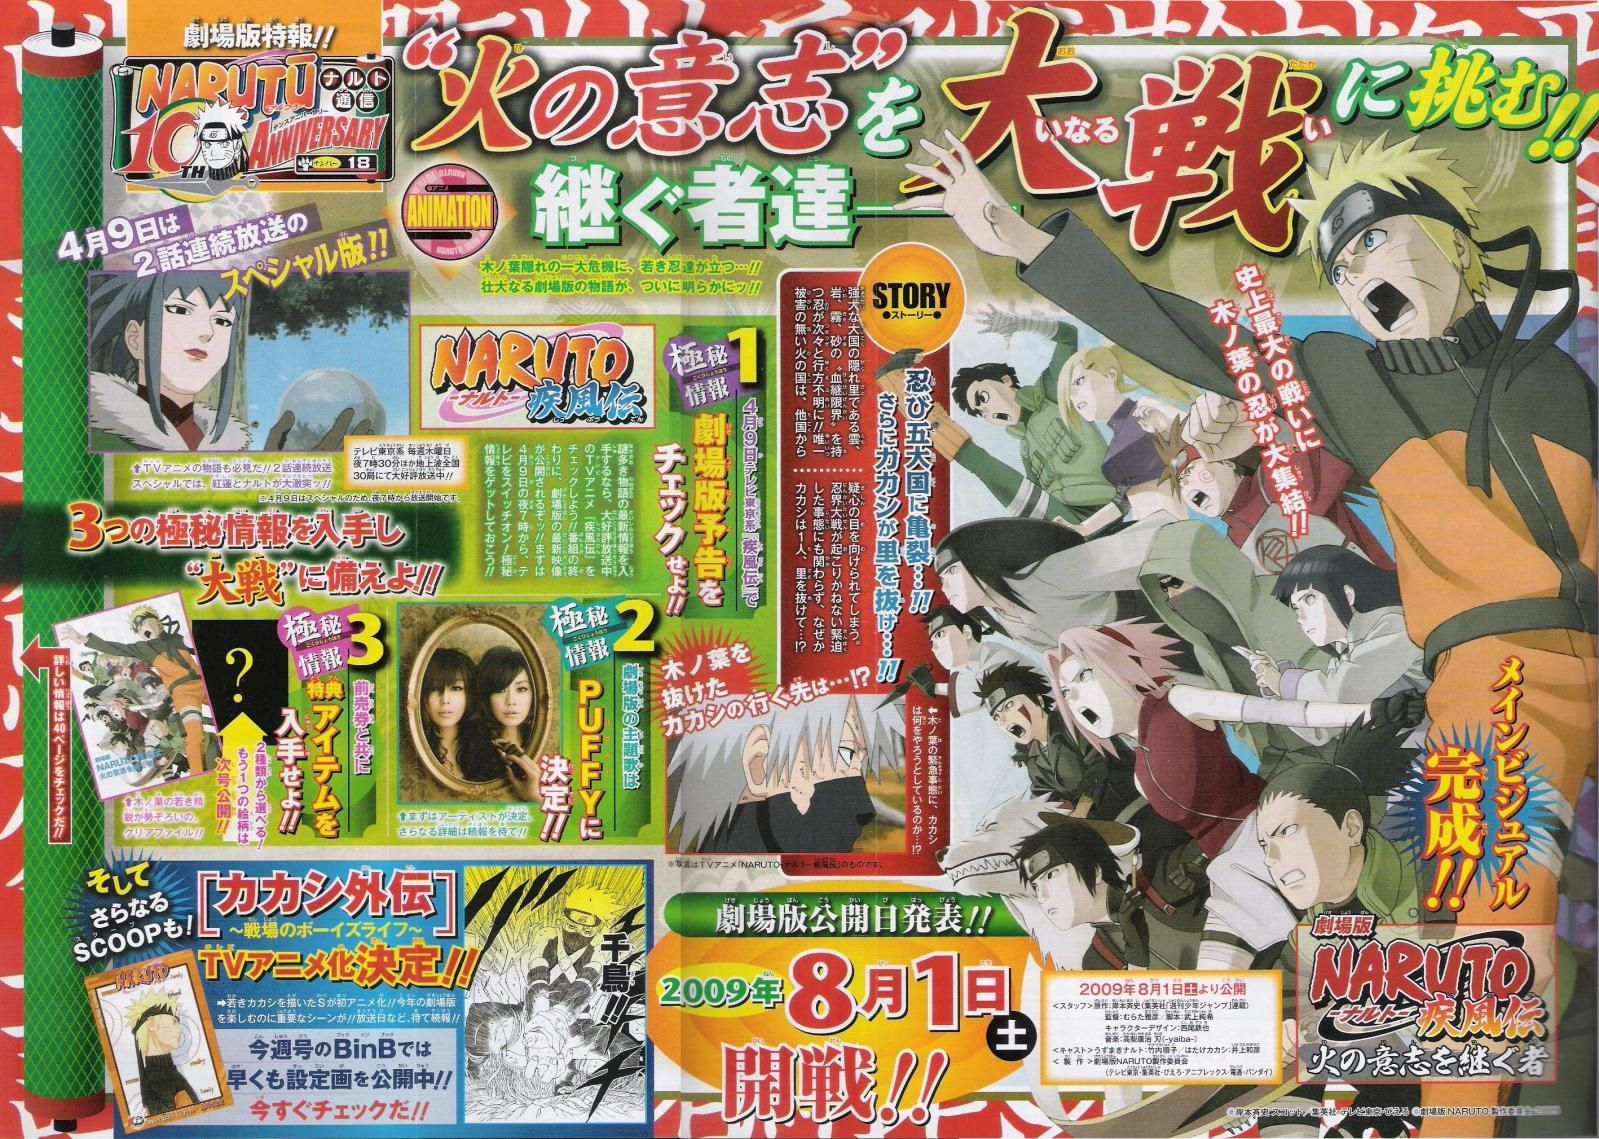 naruto shippuden film 2 naruto shippuden film 2 streaming